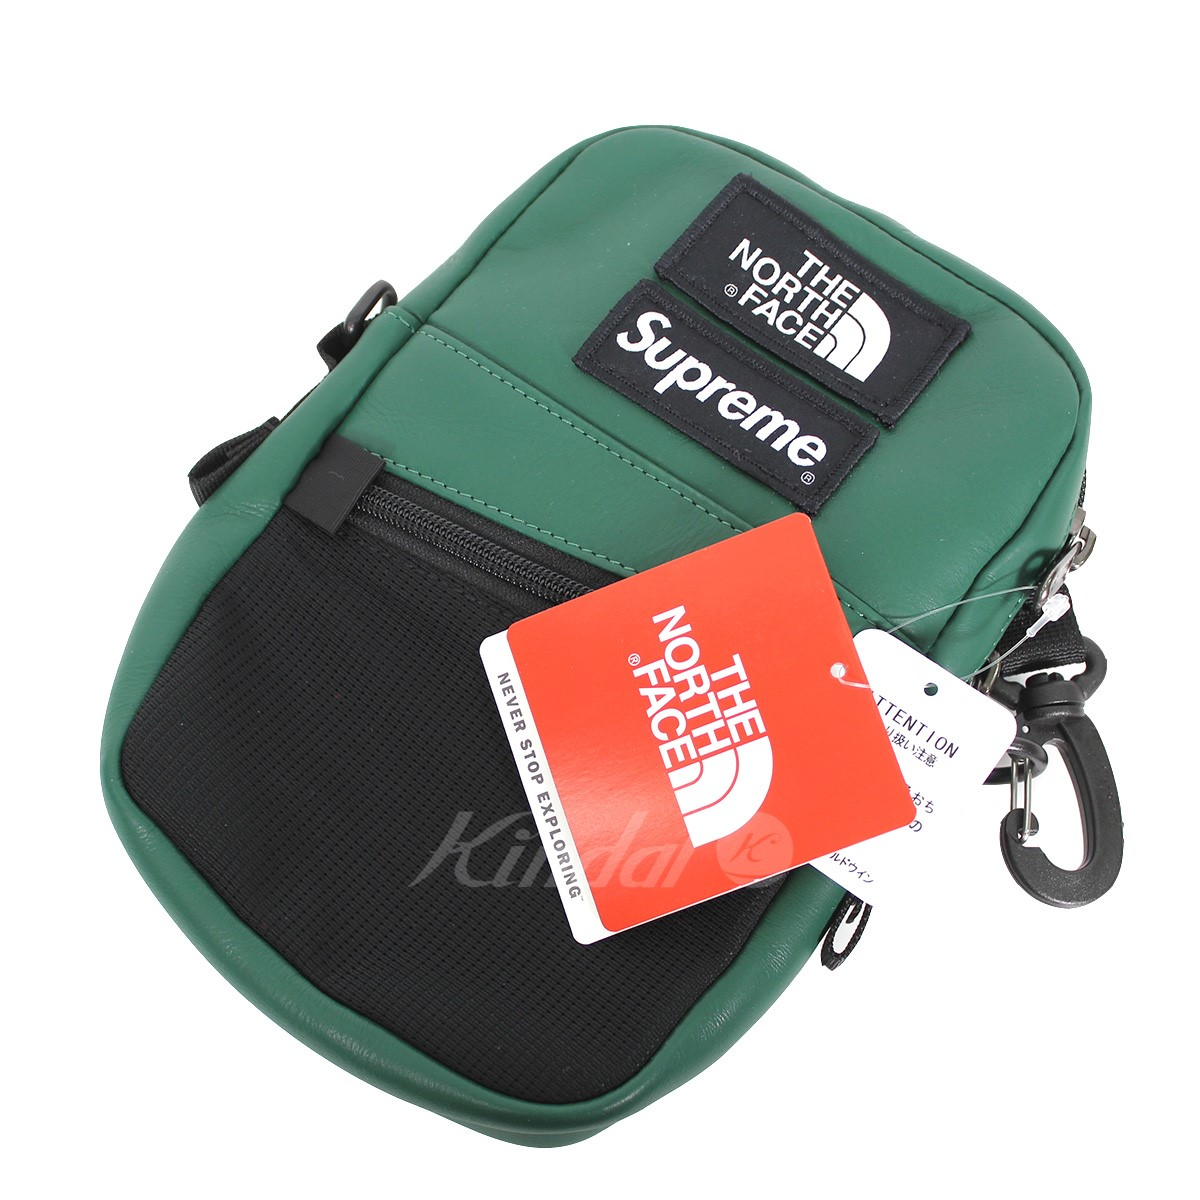 【中古】Supreme × THE NORTH FACE 18AW Leather Shoulder Bag ロゴレザーショルダーバッグ 【送料無料】 【011036】 【KIND1551】